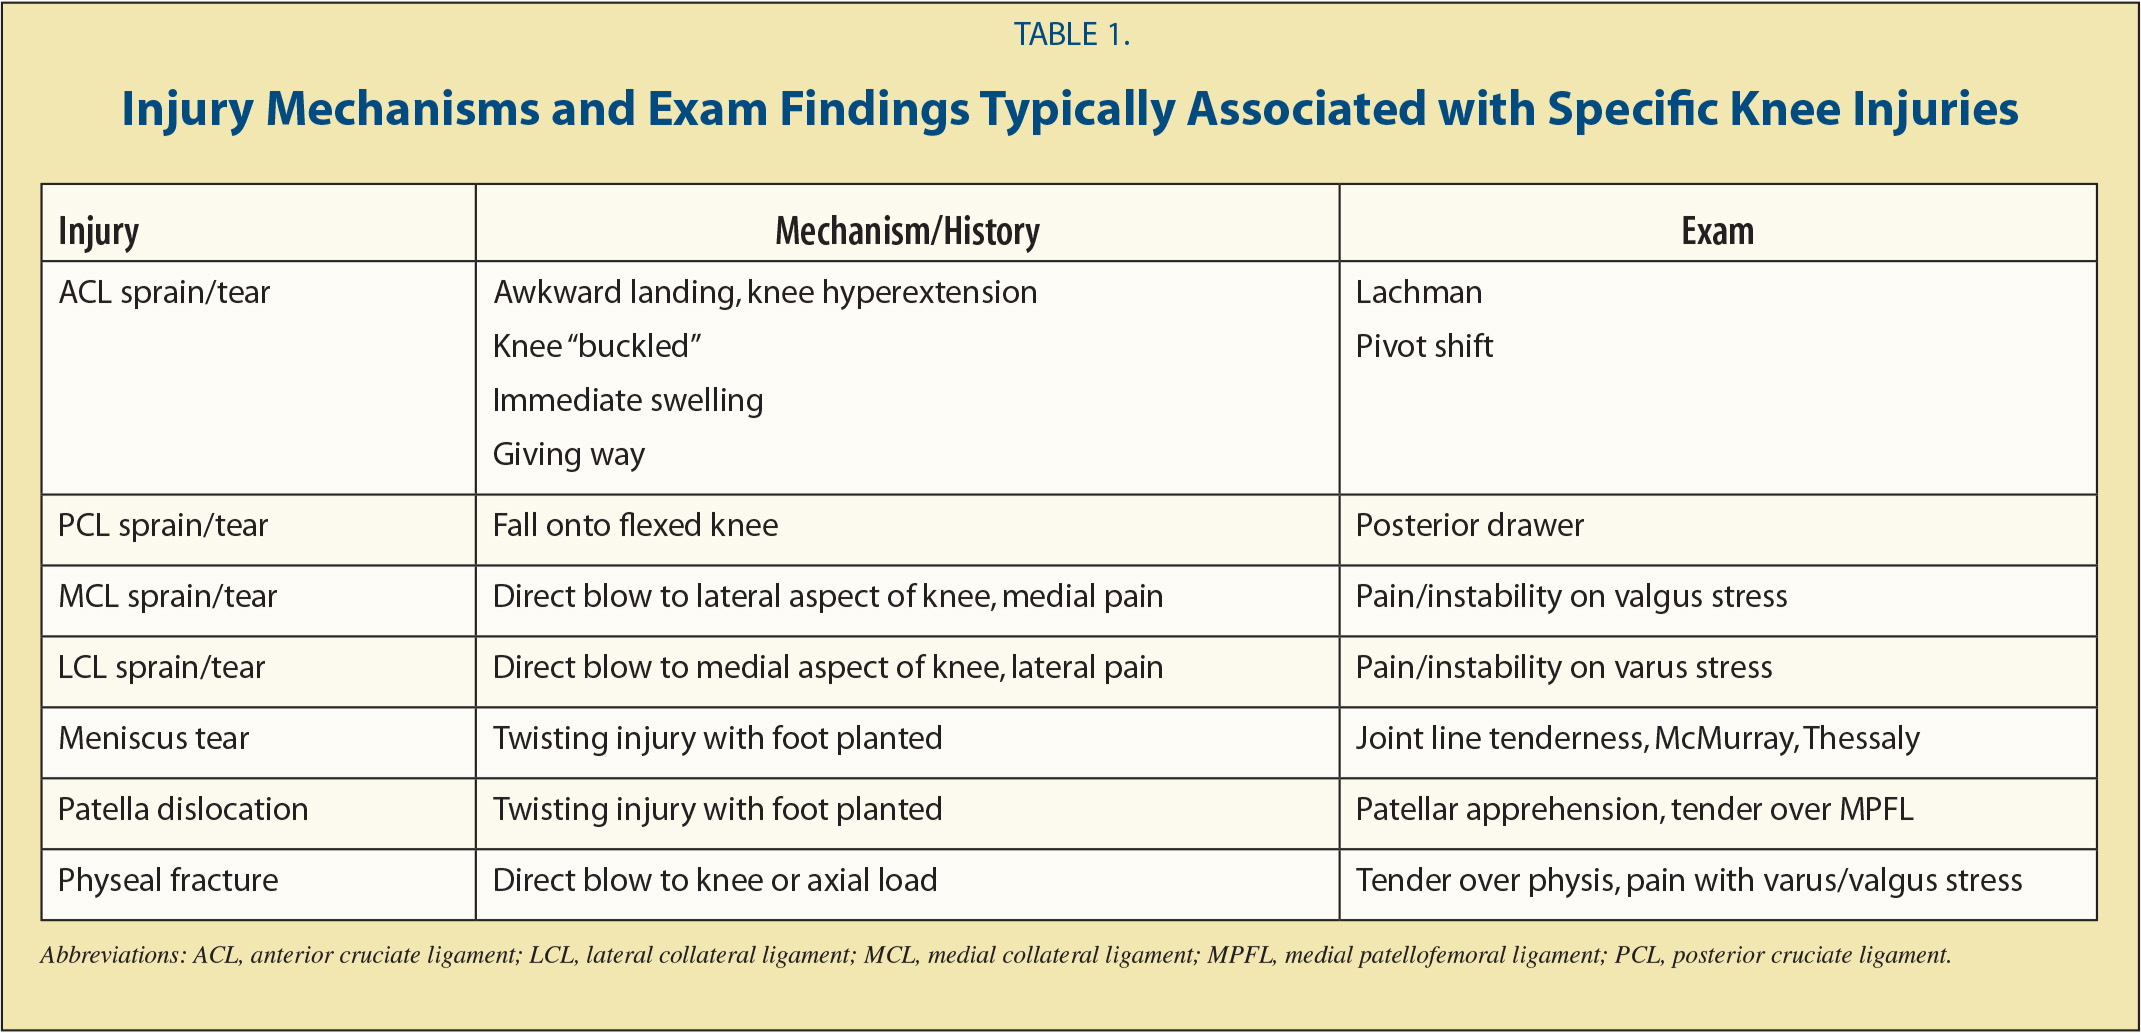 Knee pain diagnosis test - Injury Mechanisms And Exam Findings Typically Associated With Specific Knee Injuries